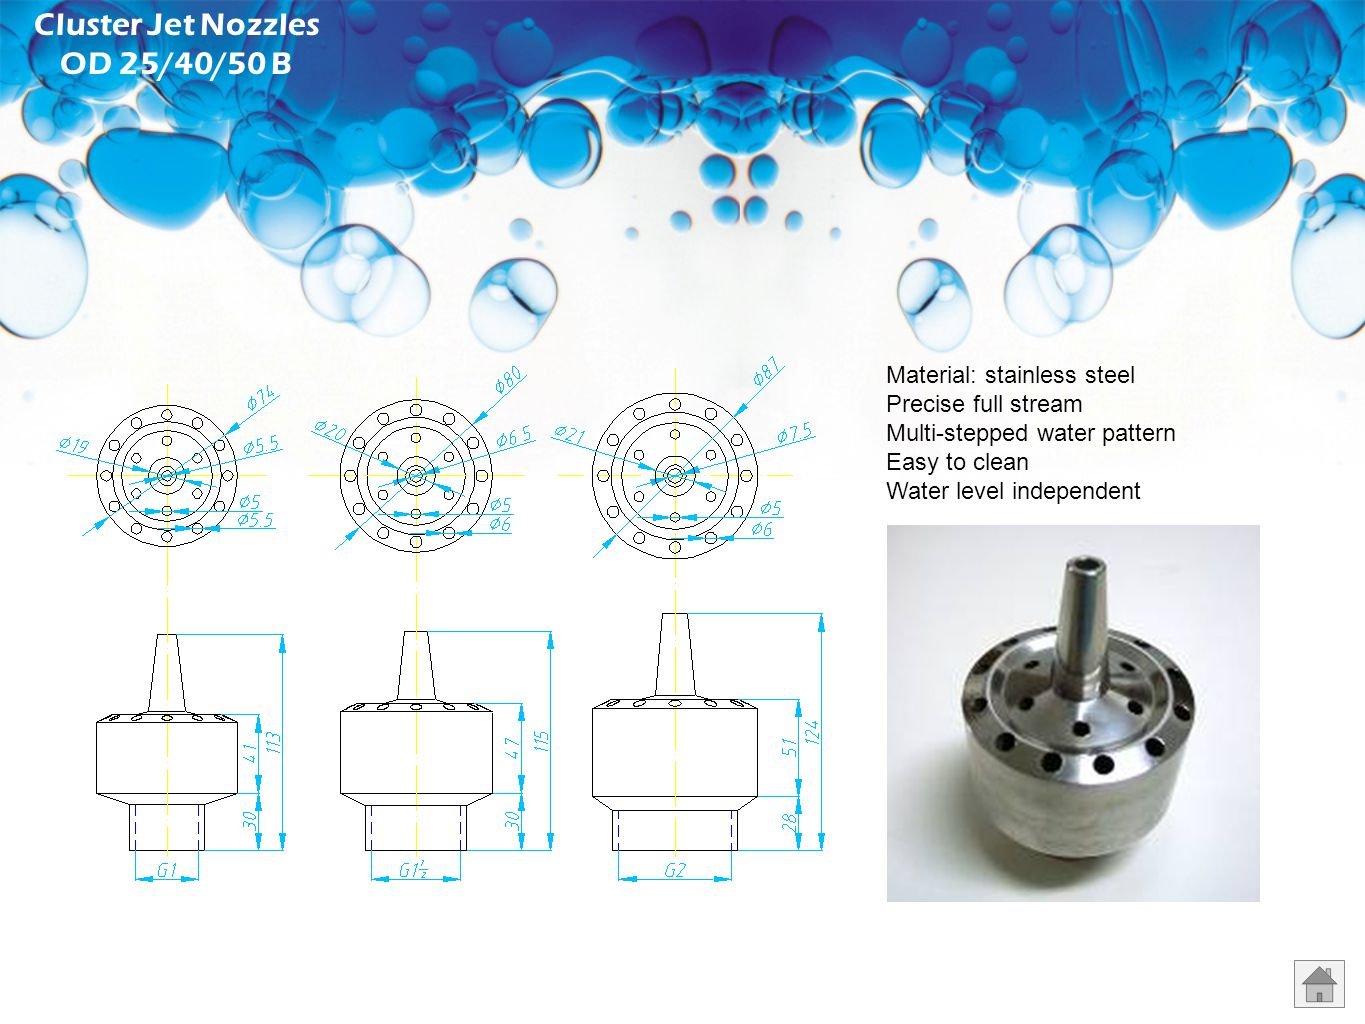 Water Bell Nozzles MN25/40/50 B Material: stainless steel Transparent water film Adjustable bell diameter Silent running Water level independent